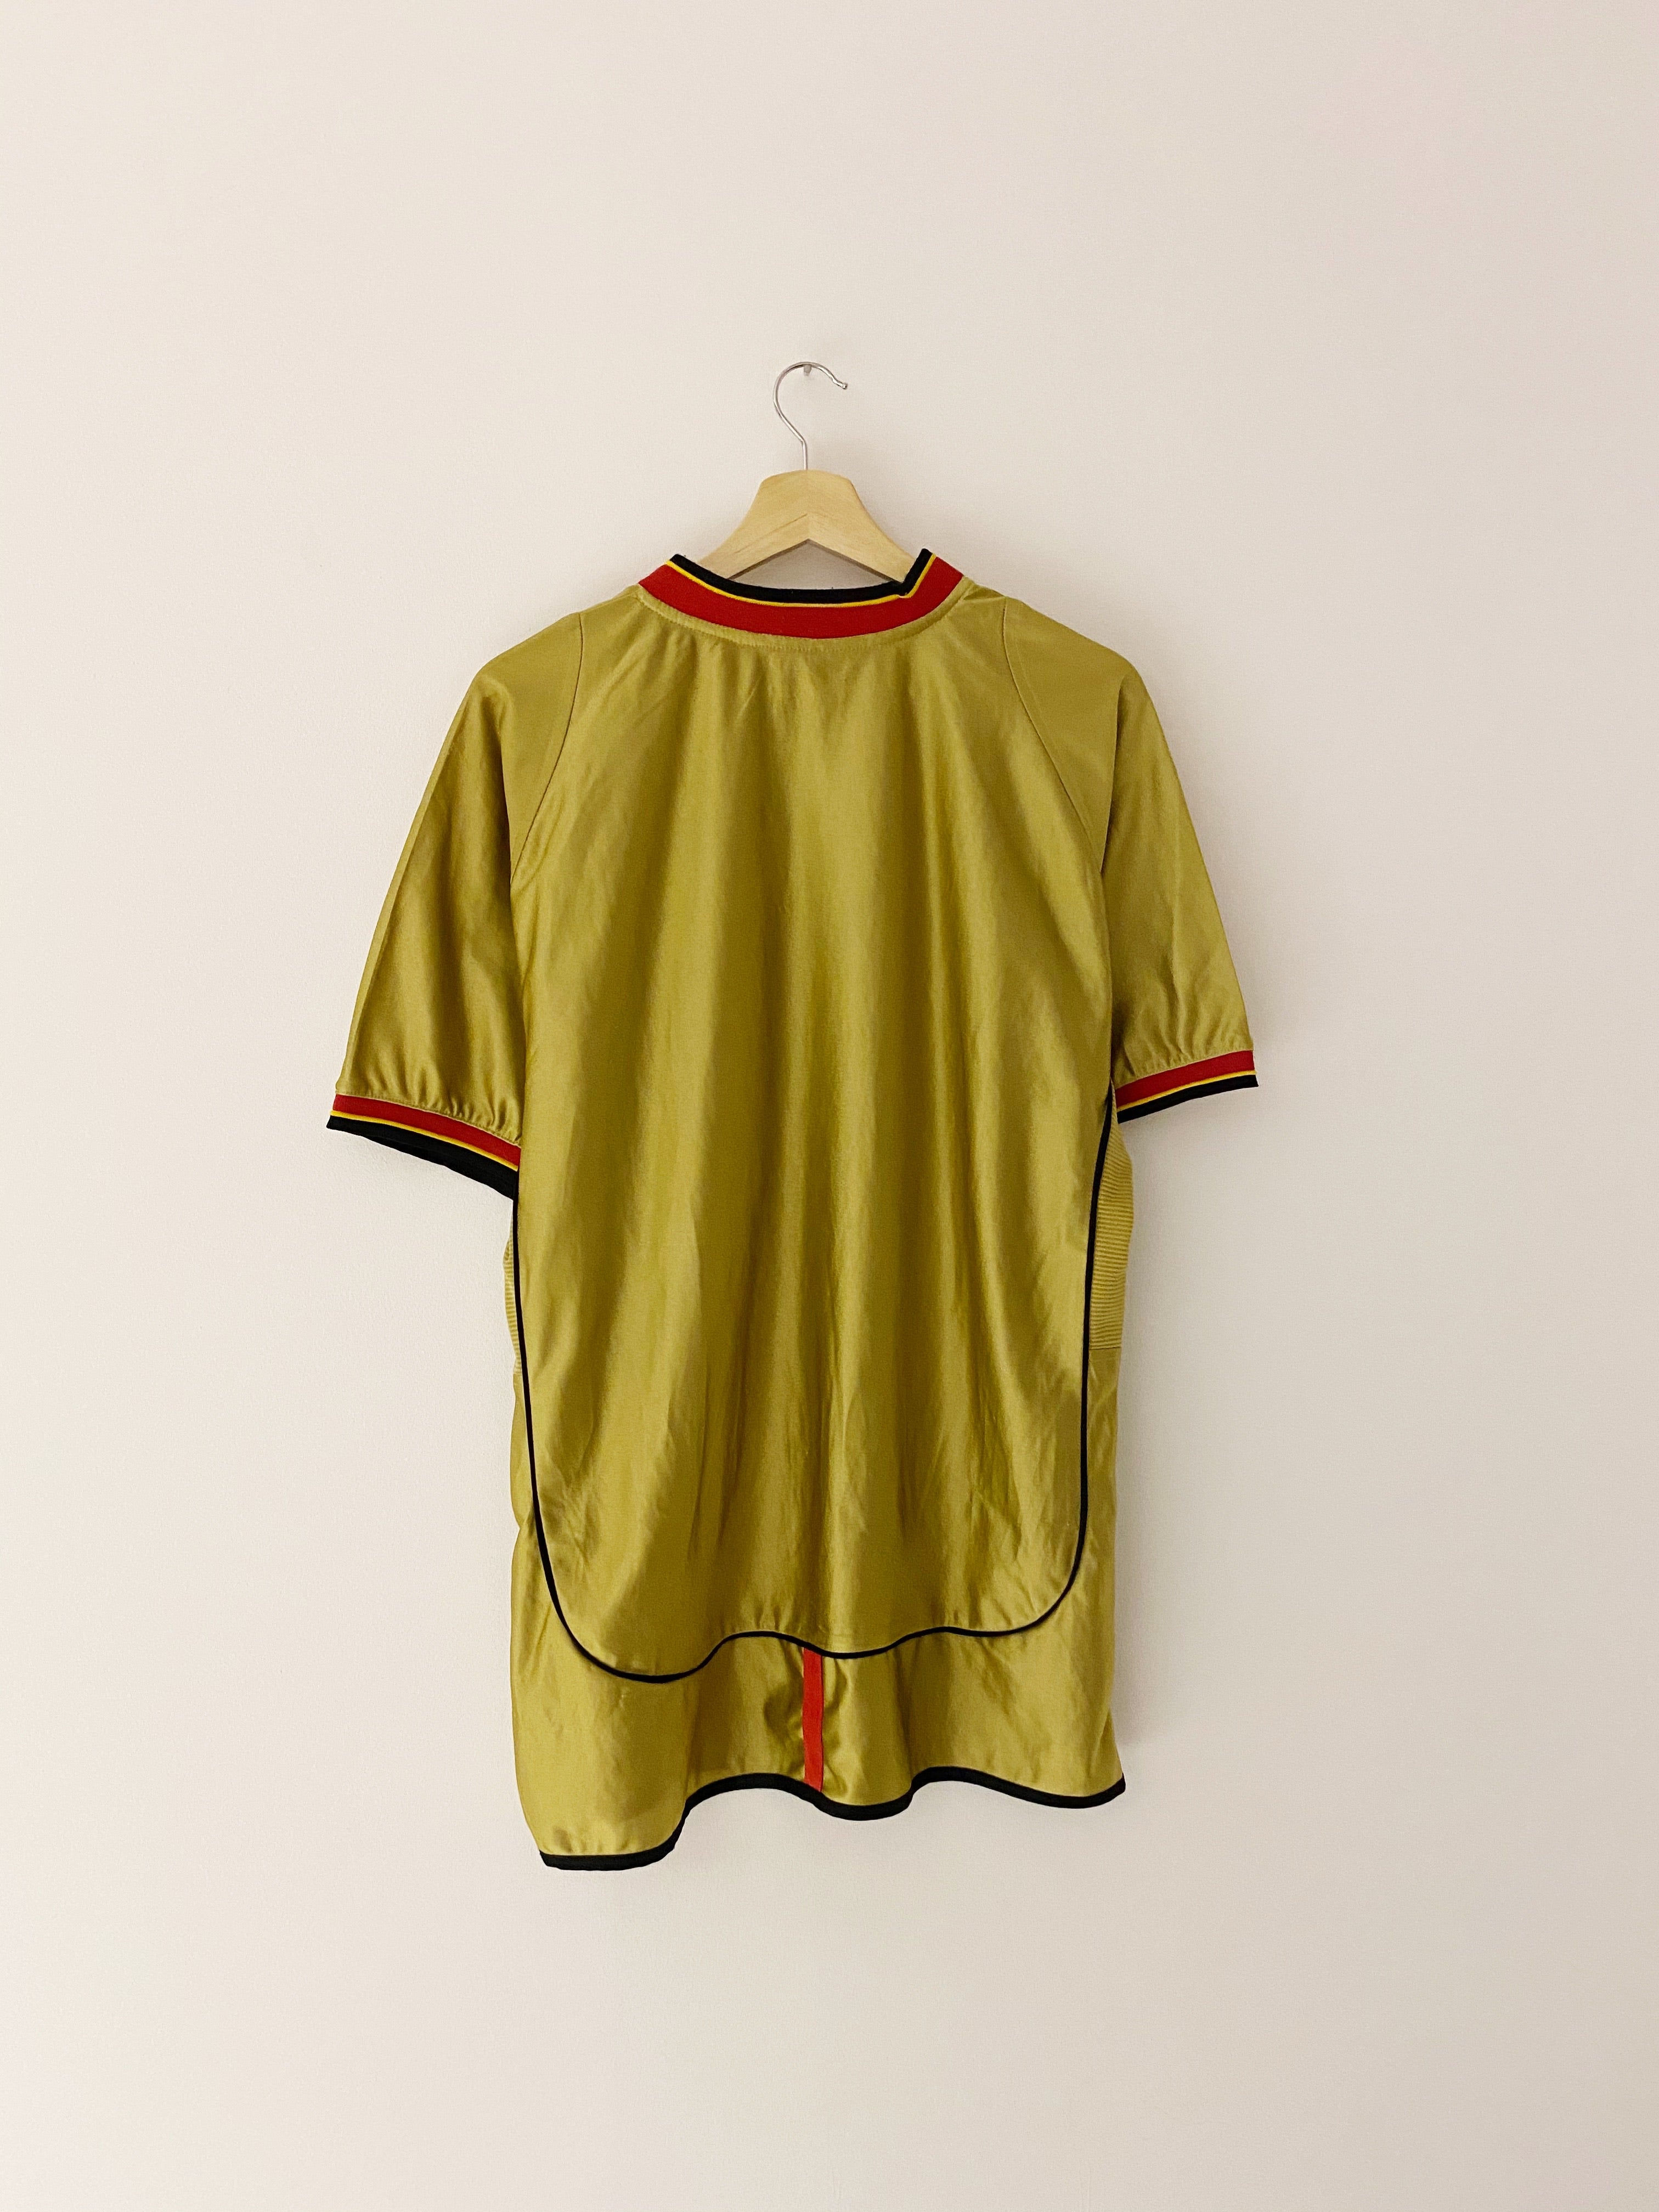 2002/03 Galatasaray Fourth Shirt (L) 6.5/10